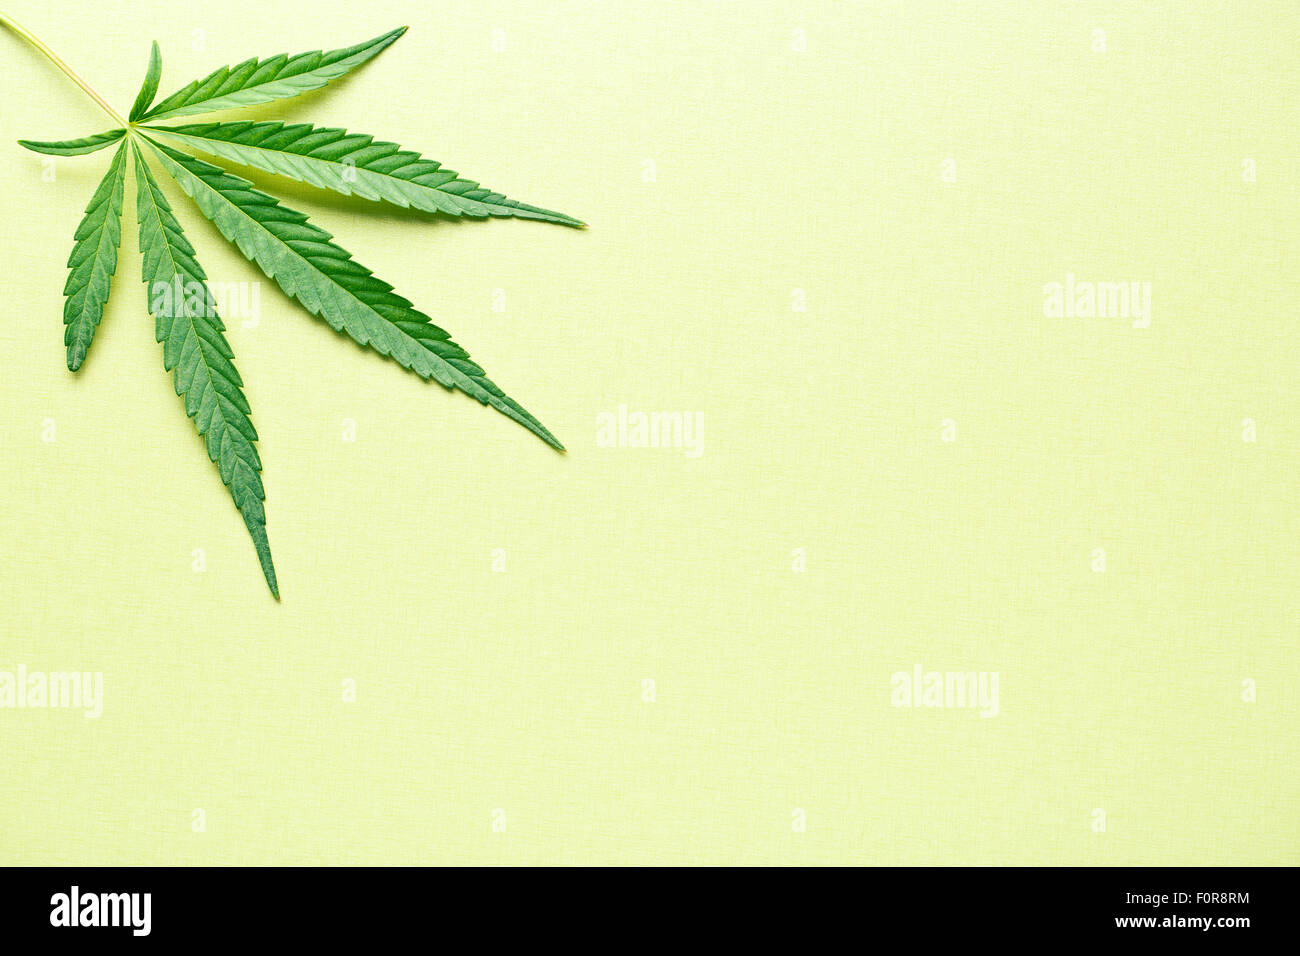 cannabis leaf on yellow background - Stock Image